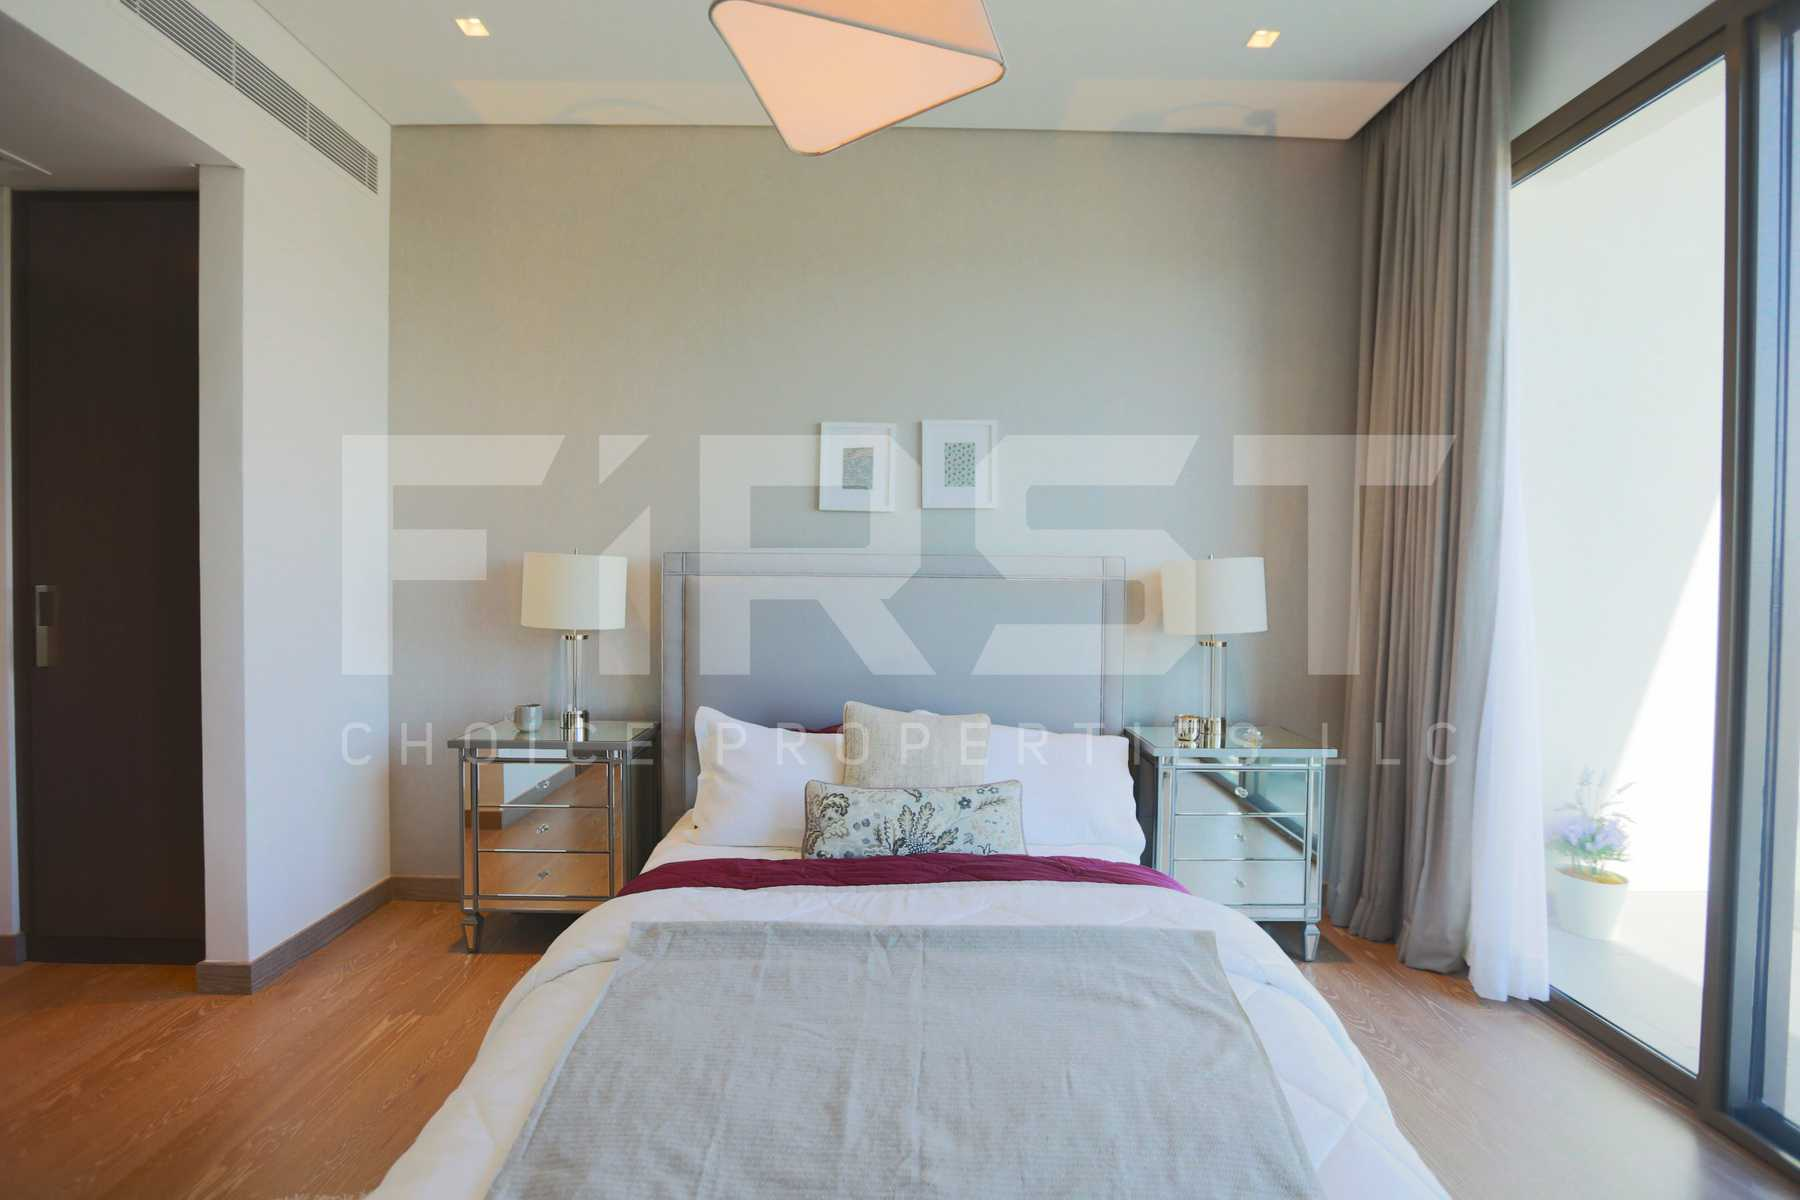 Internal Photo of 4 Bedroom Villa Type 4F in Yas Acres Yas Island Abu Dhabi UAE (15).jpg